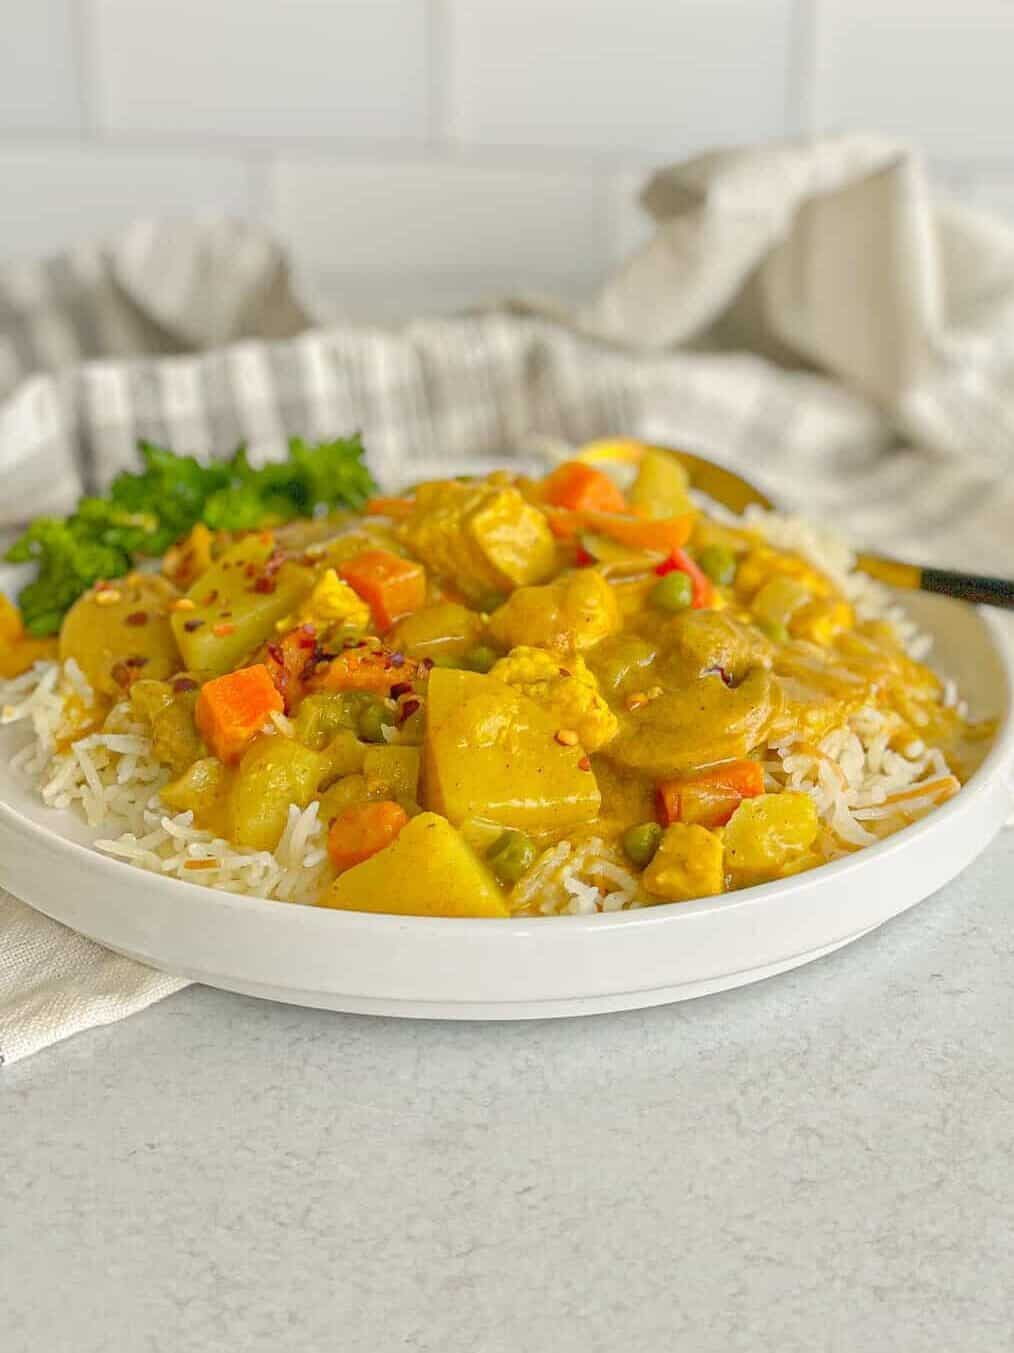 Creamy and easy chicken vegetable curry on a bed of white rice